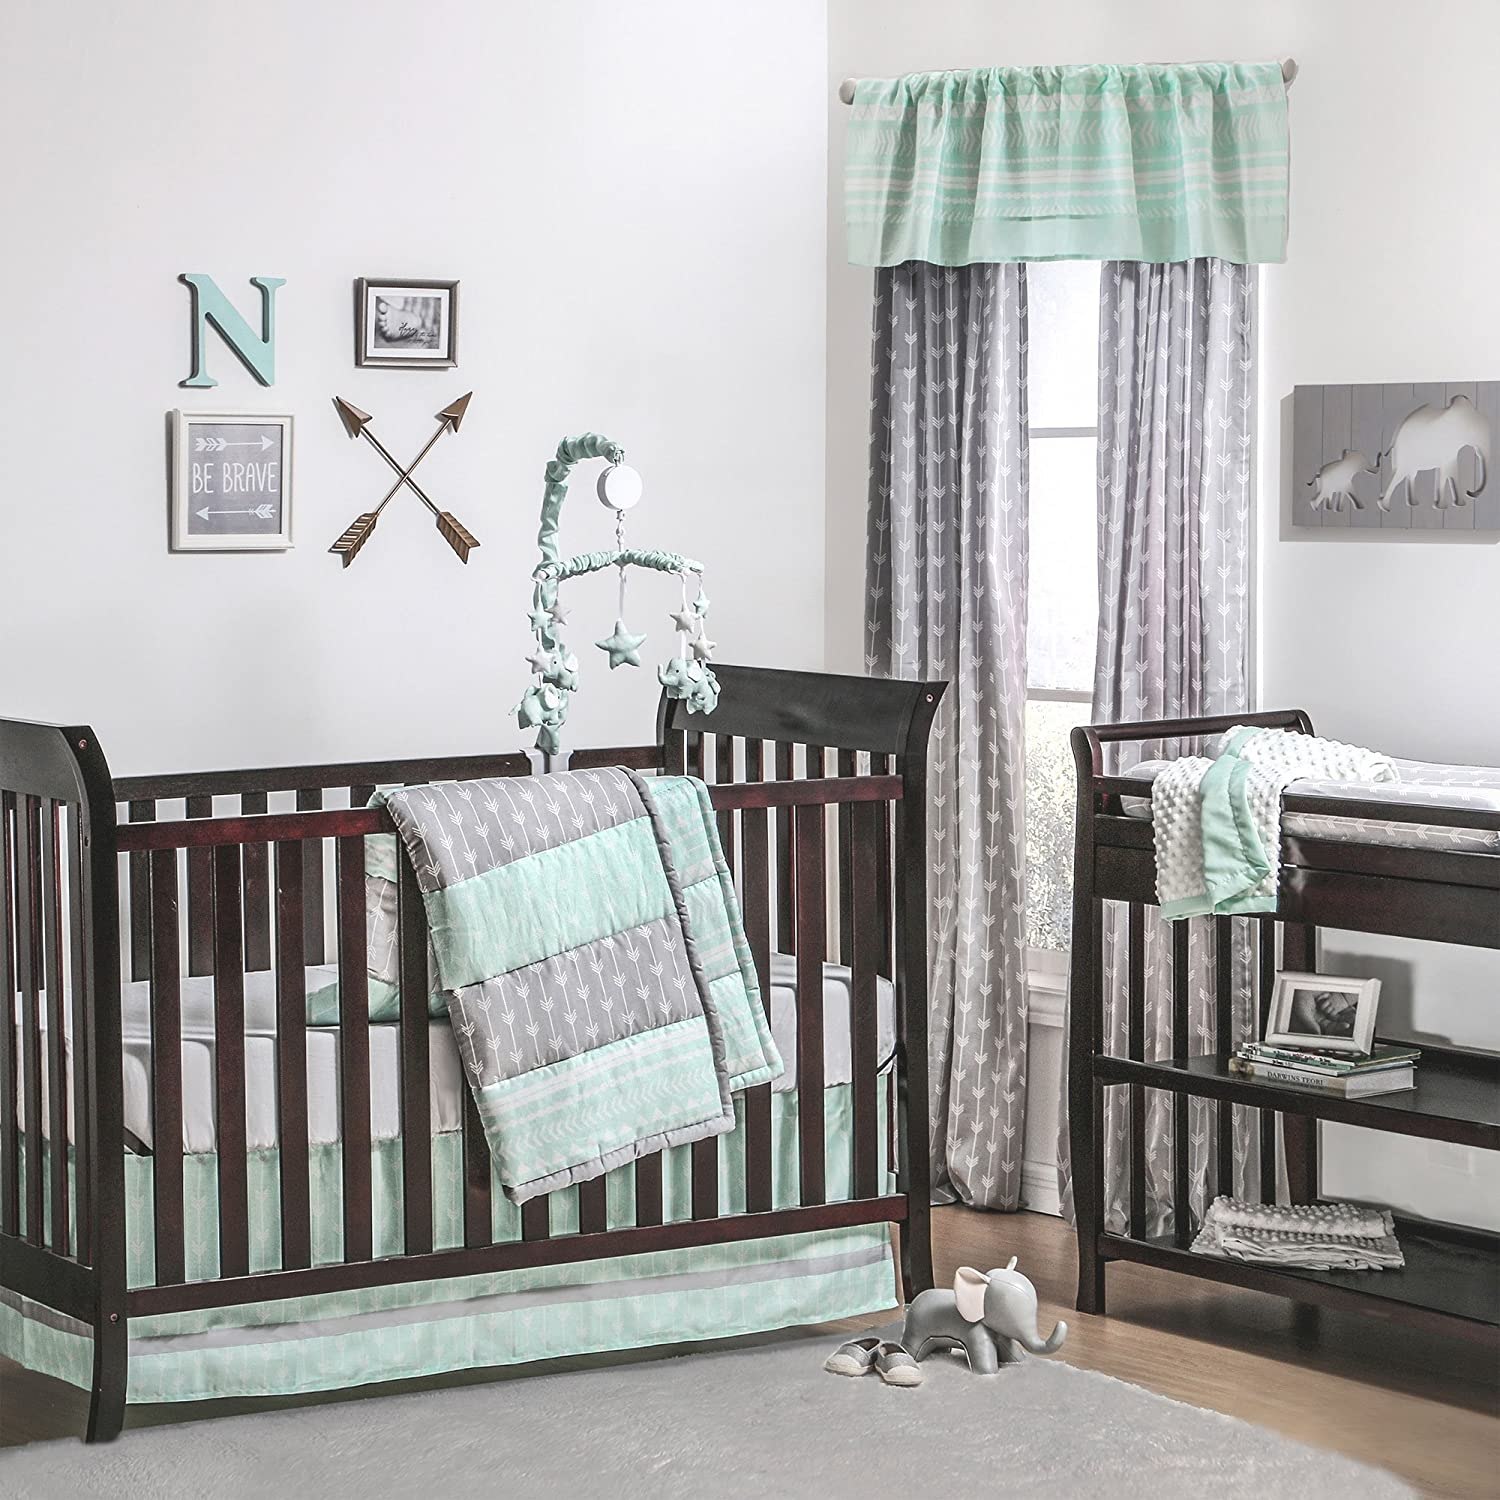 Mint Green and Grey Arrow Stripe 4 Piece Baby Crib Bedding Set by The Peanut Shell BS4ARMI